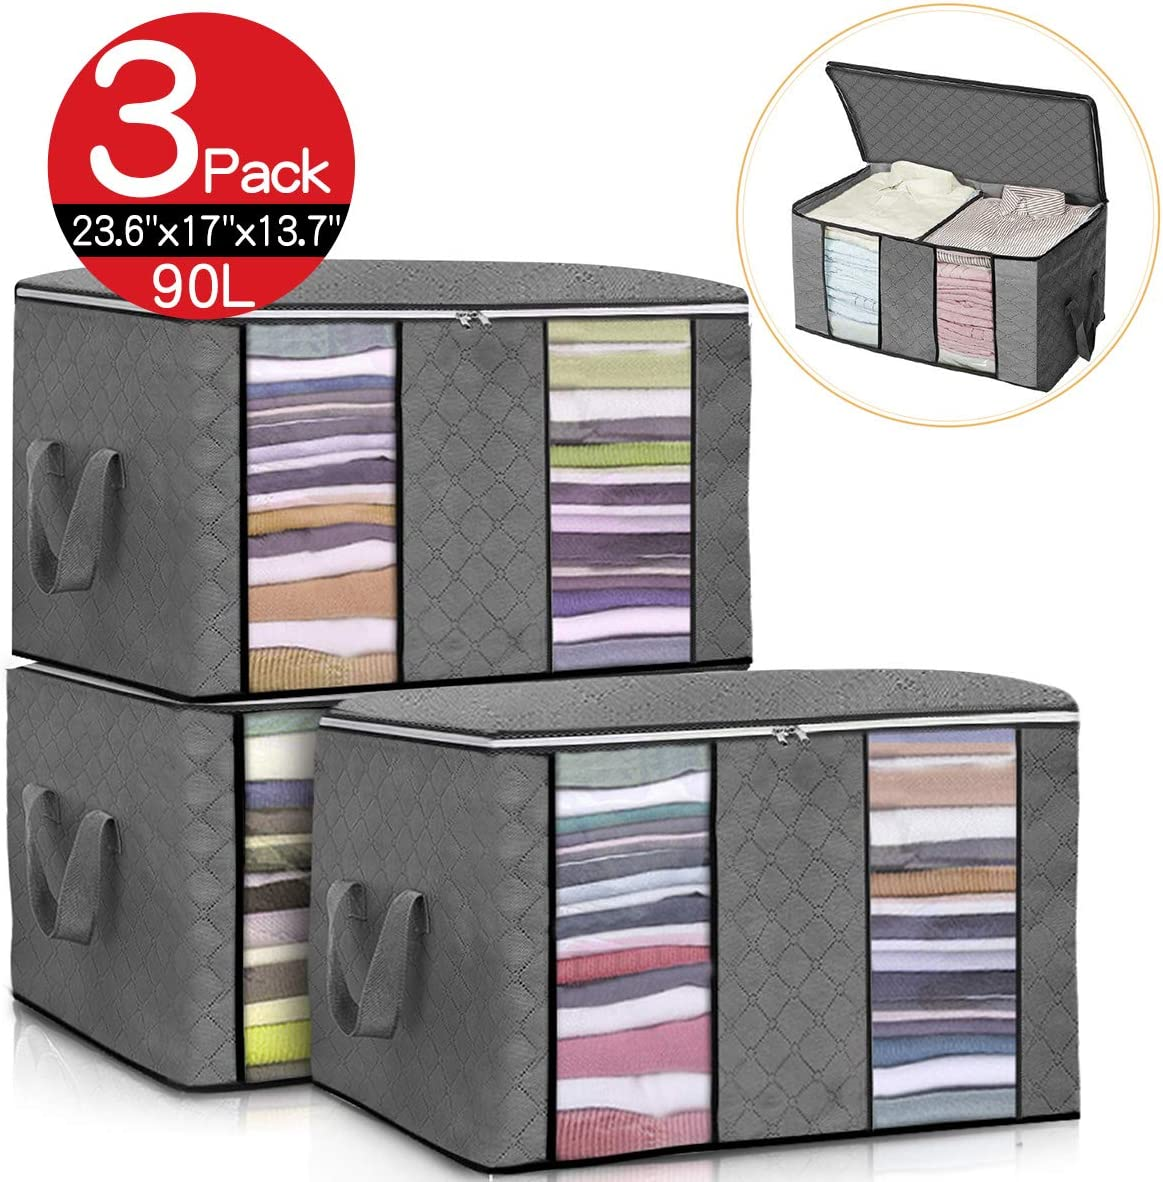 king do way Closet Organizer Clothes Storage Bags Large Capacity Storage Organizers with Reinforced Handle,Stainless Steel Zipper,3 Layer Fabric for Comforters,Bedding,Blankets Clothing (Grey)